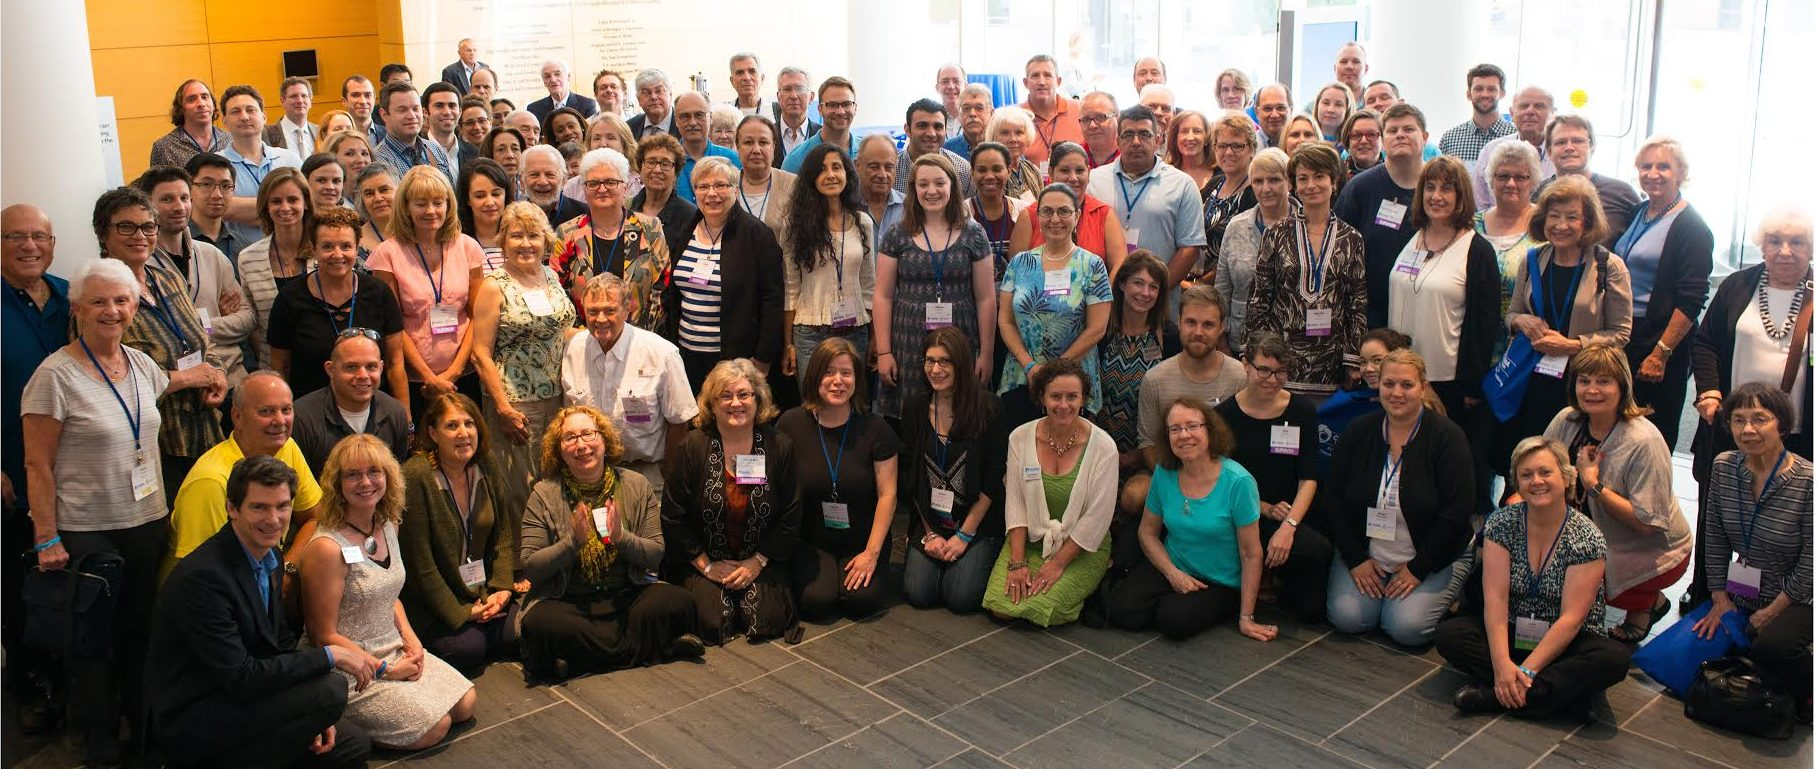 2015 New York Chordoma Community Conference